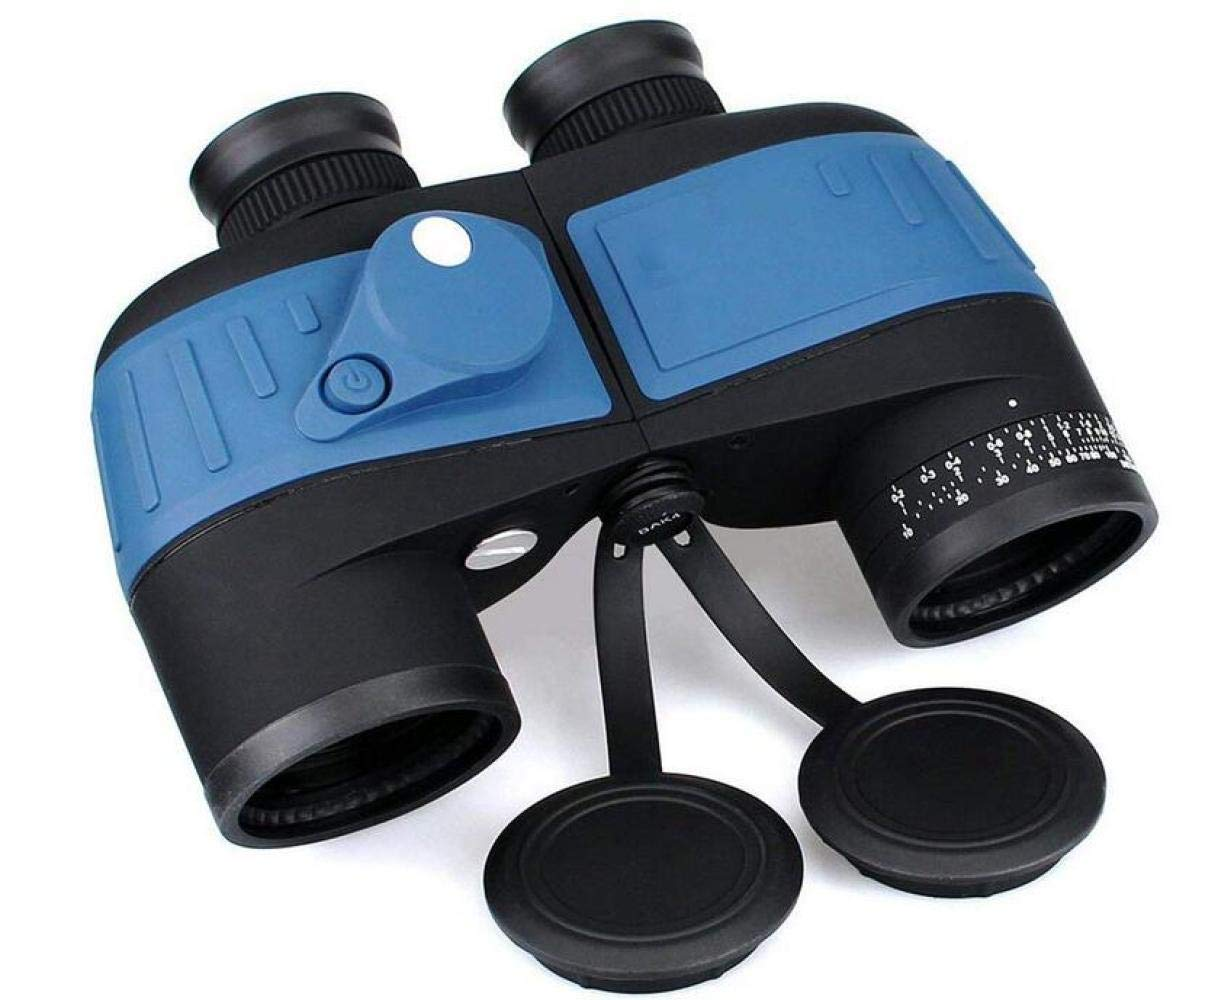 CTO Marine Binoculars 10X50 Waterproof Floating with Internal Rangefinder and Compass Navigation Boating Fishing Water Sports,A,Telescope